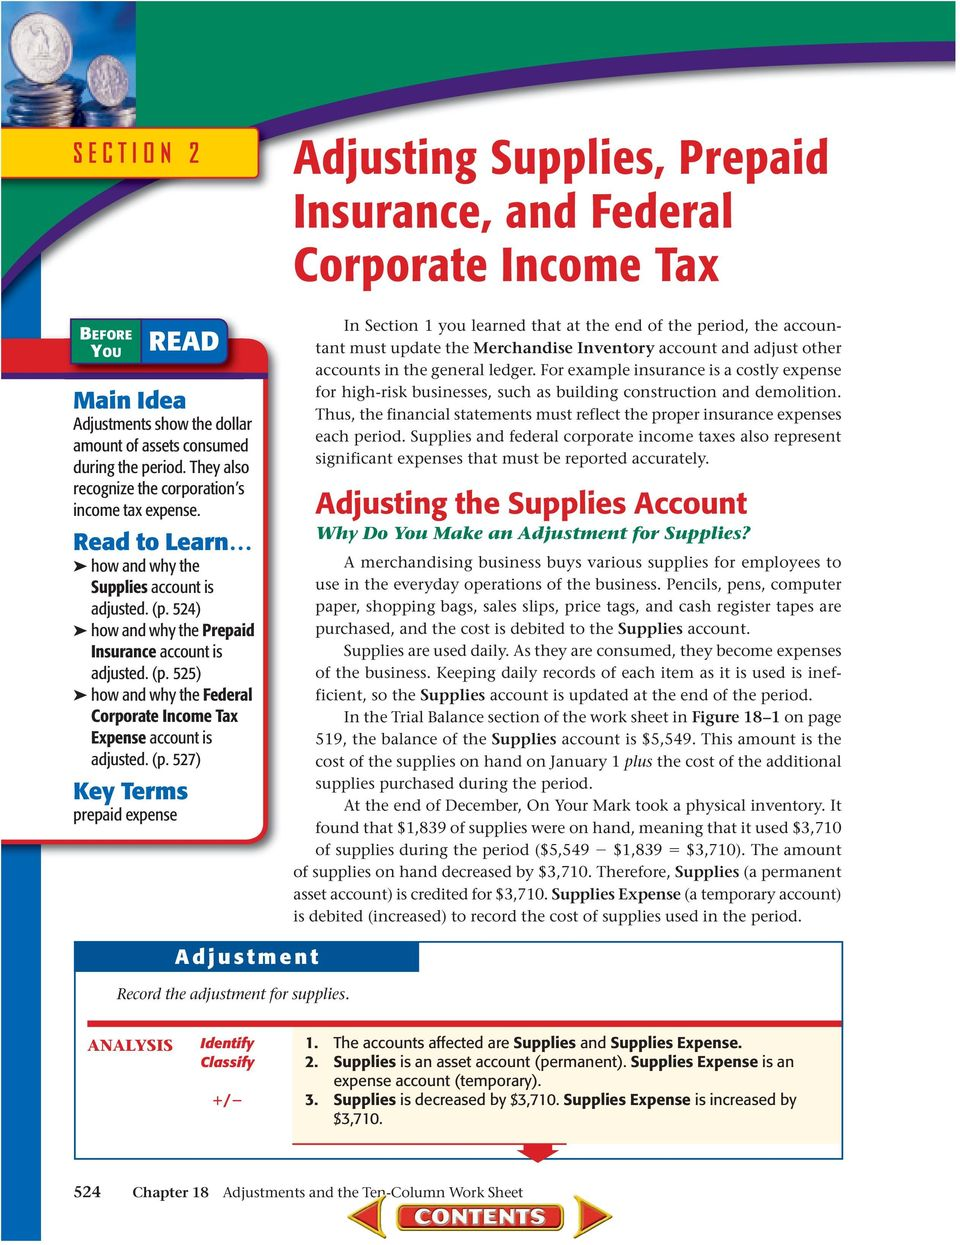 (p. 527) Key Terms prepaid expense In Section 1 you learned that at the end of the period, the accountant must update the Merchandise Inventory account and adjust other accounts in the general ledger.